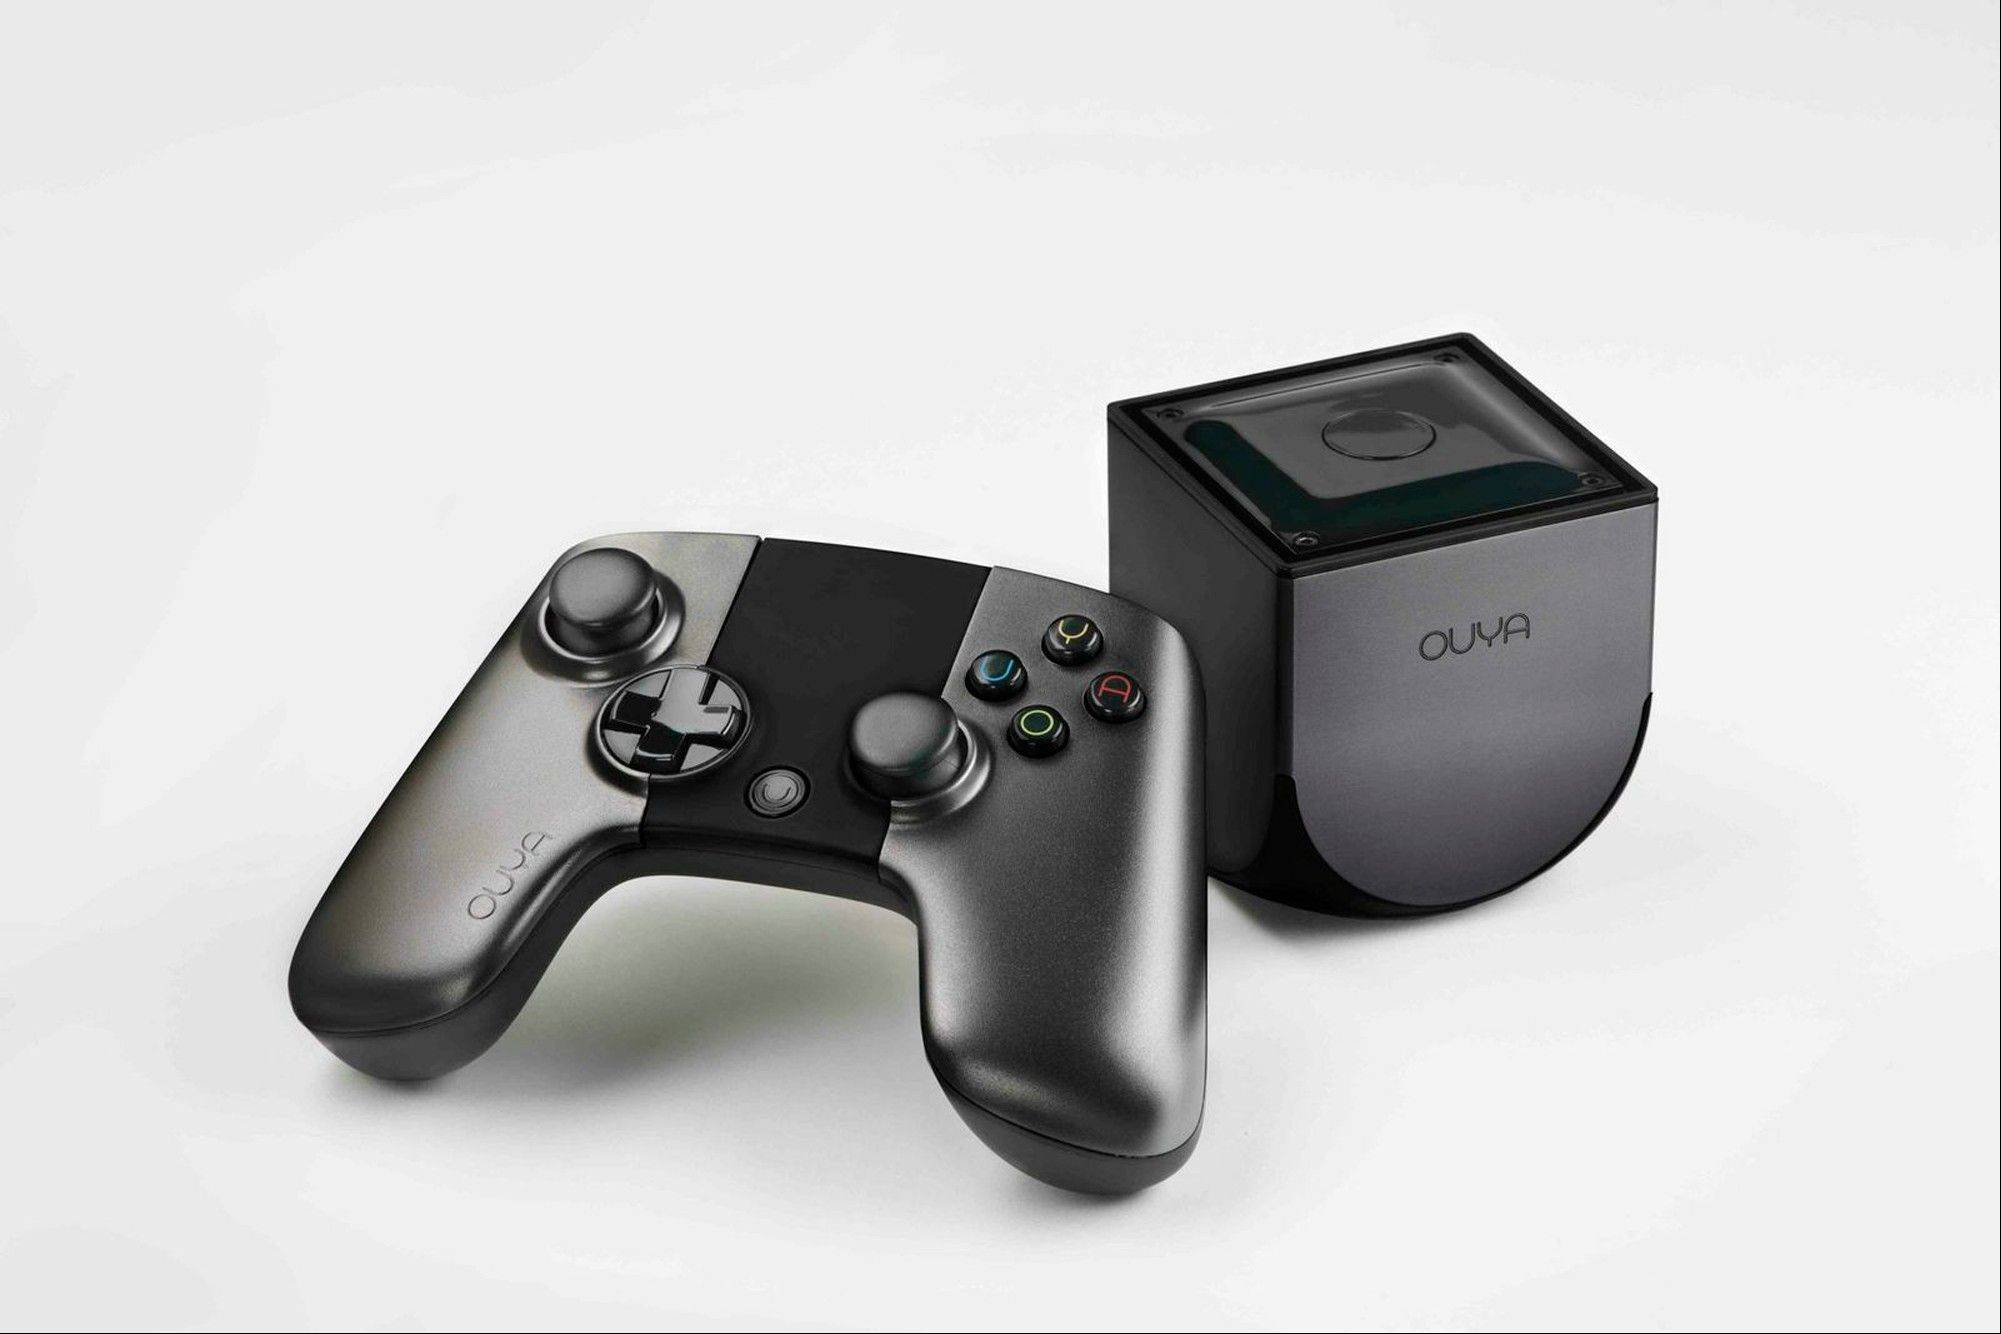 Ouya, the Android-based video game console, aims to challenge the dominance of the Xboxes, Nintendos and PlayStations of the world. The console went on sale earlier this week.